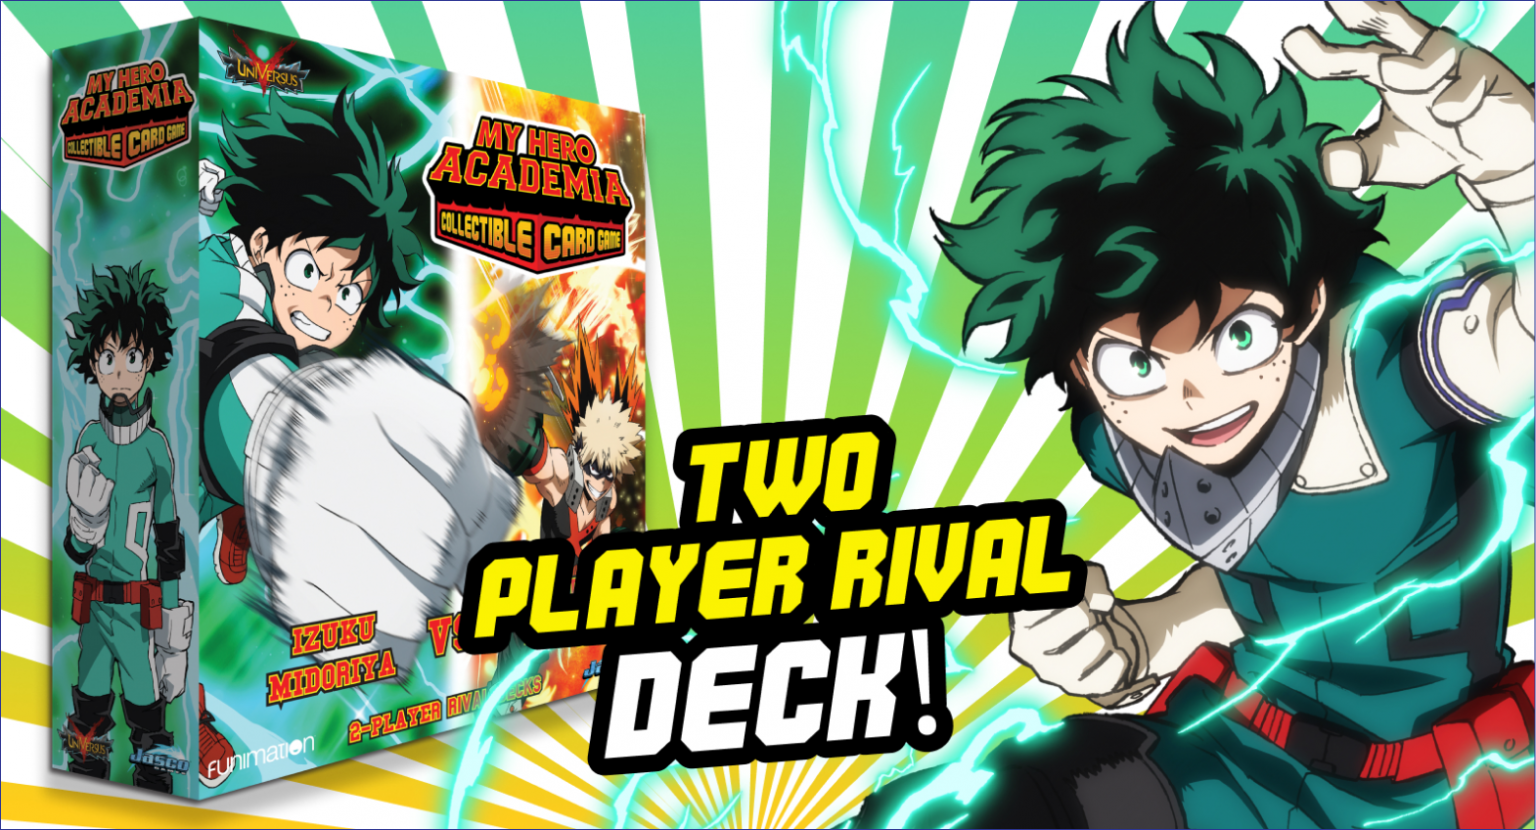 Two player rival deck